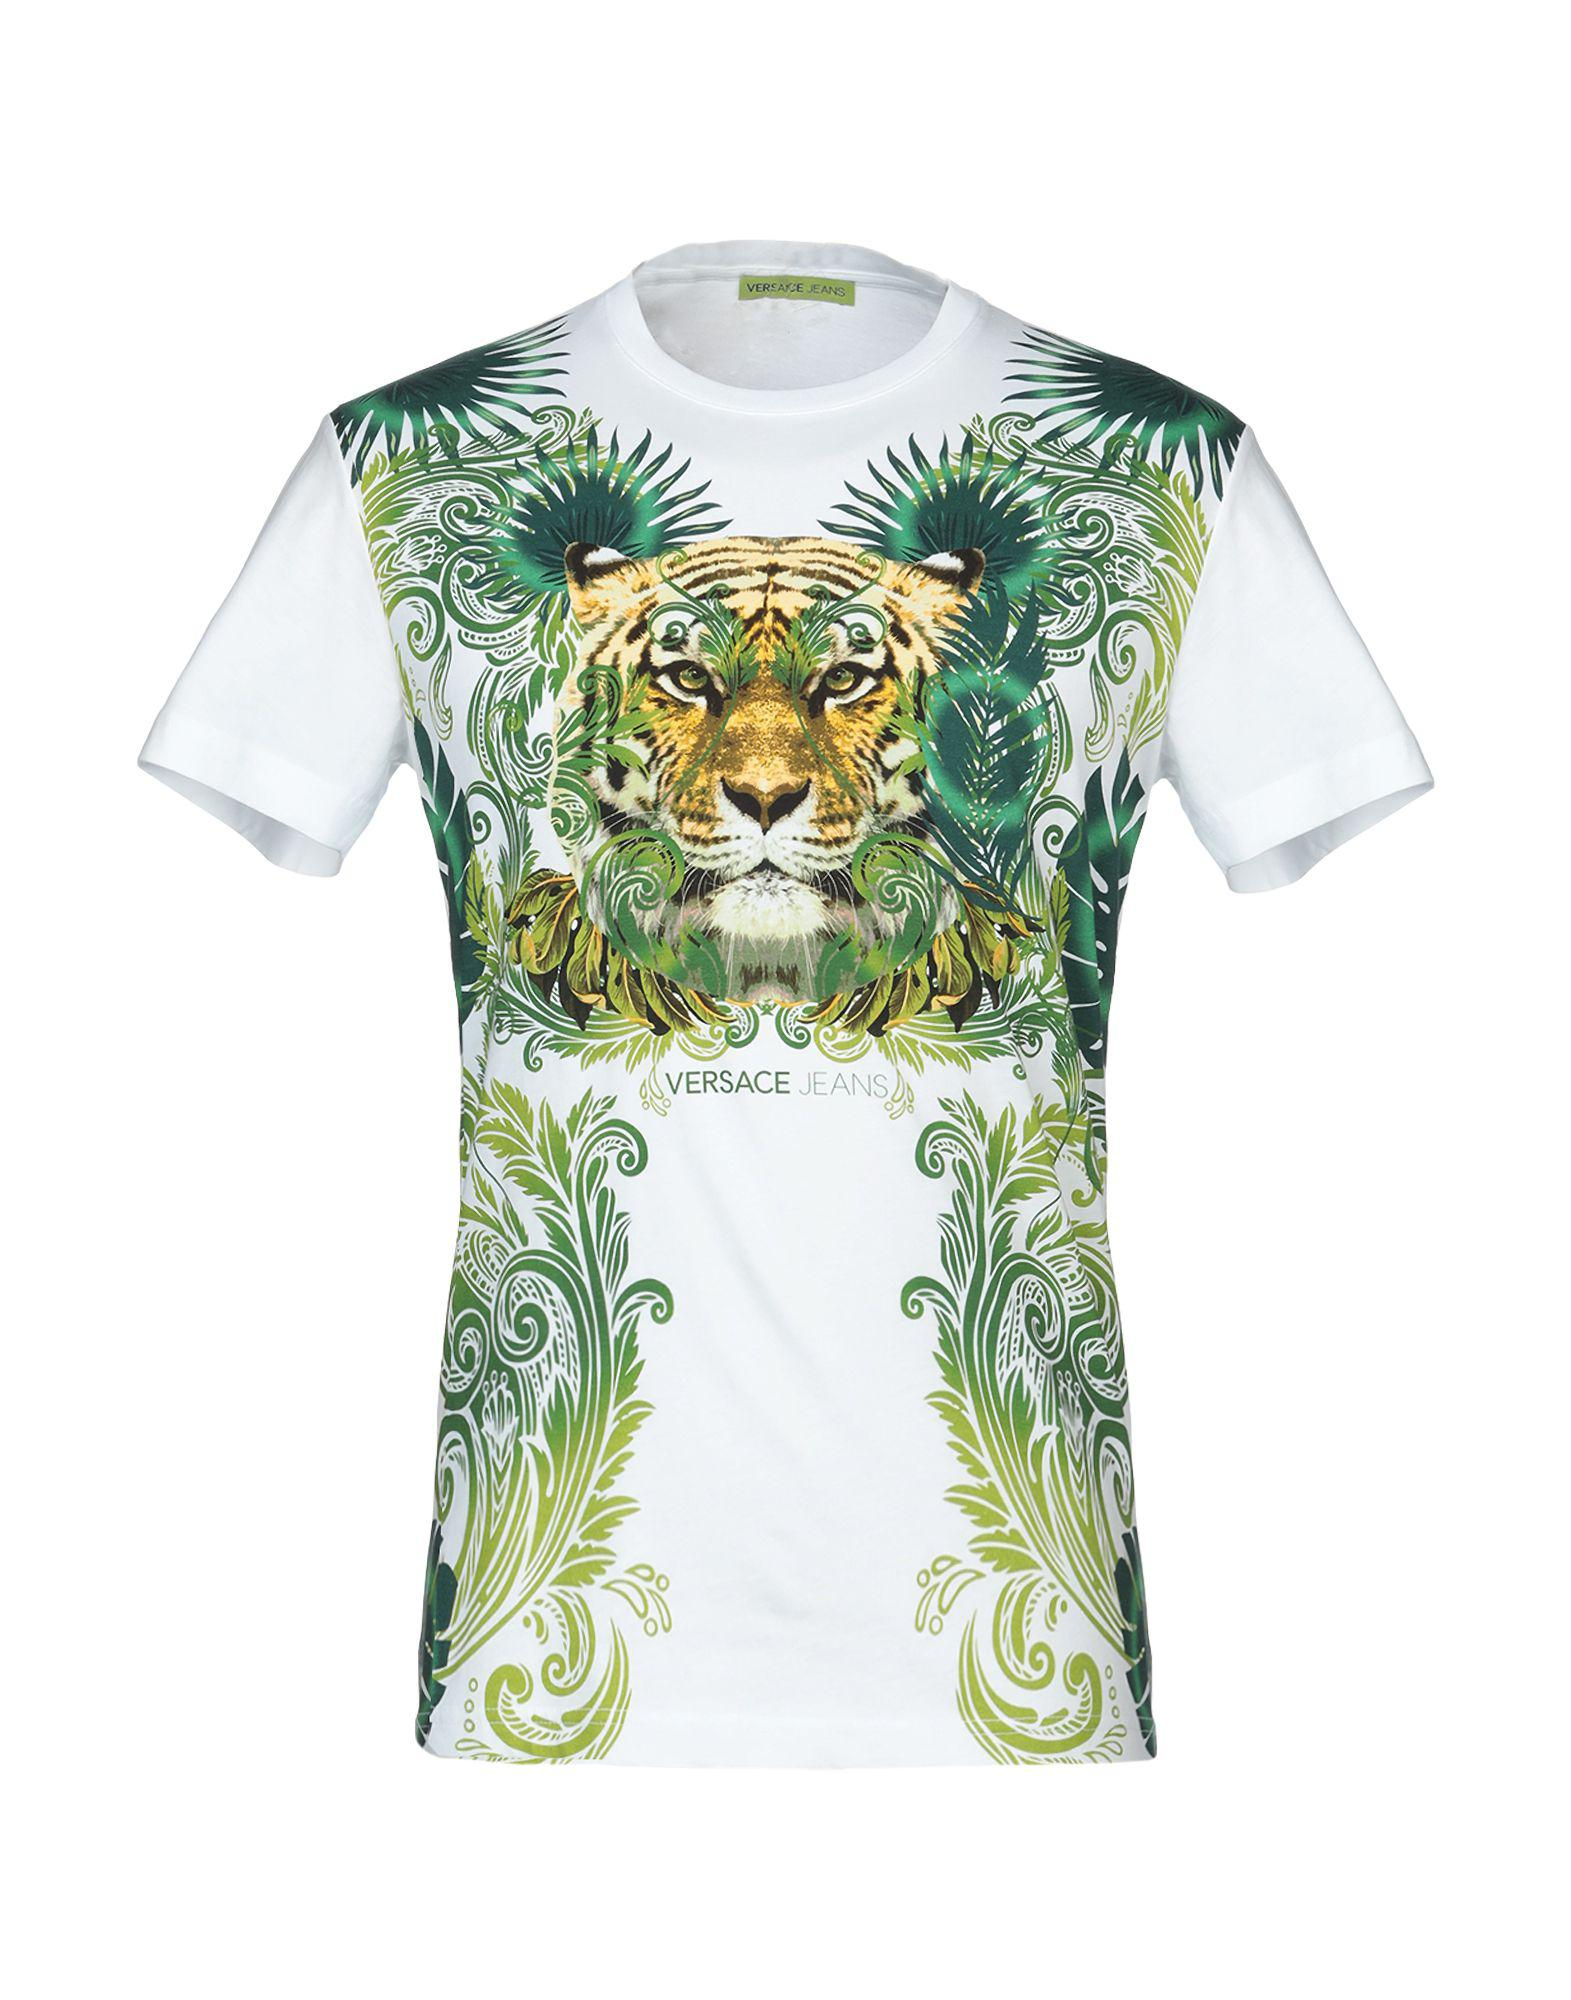 8a911ab5 Versace Jeans - White T-shirt for Men - Lyst. View fullscreen